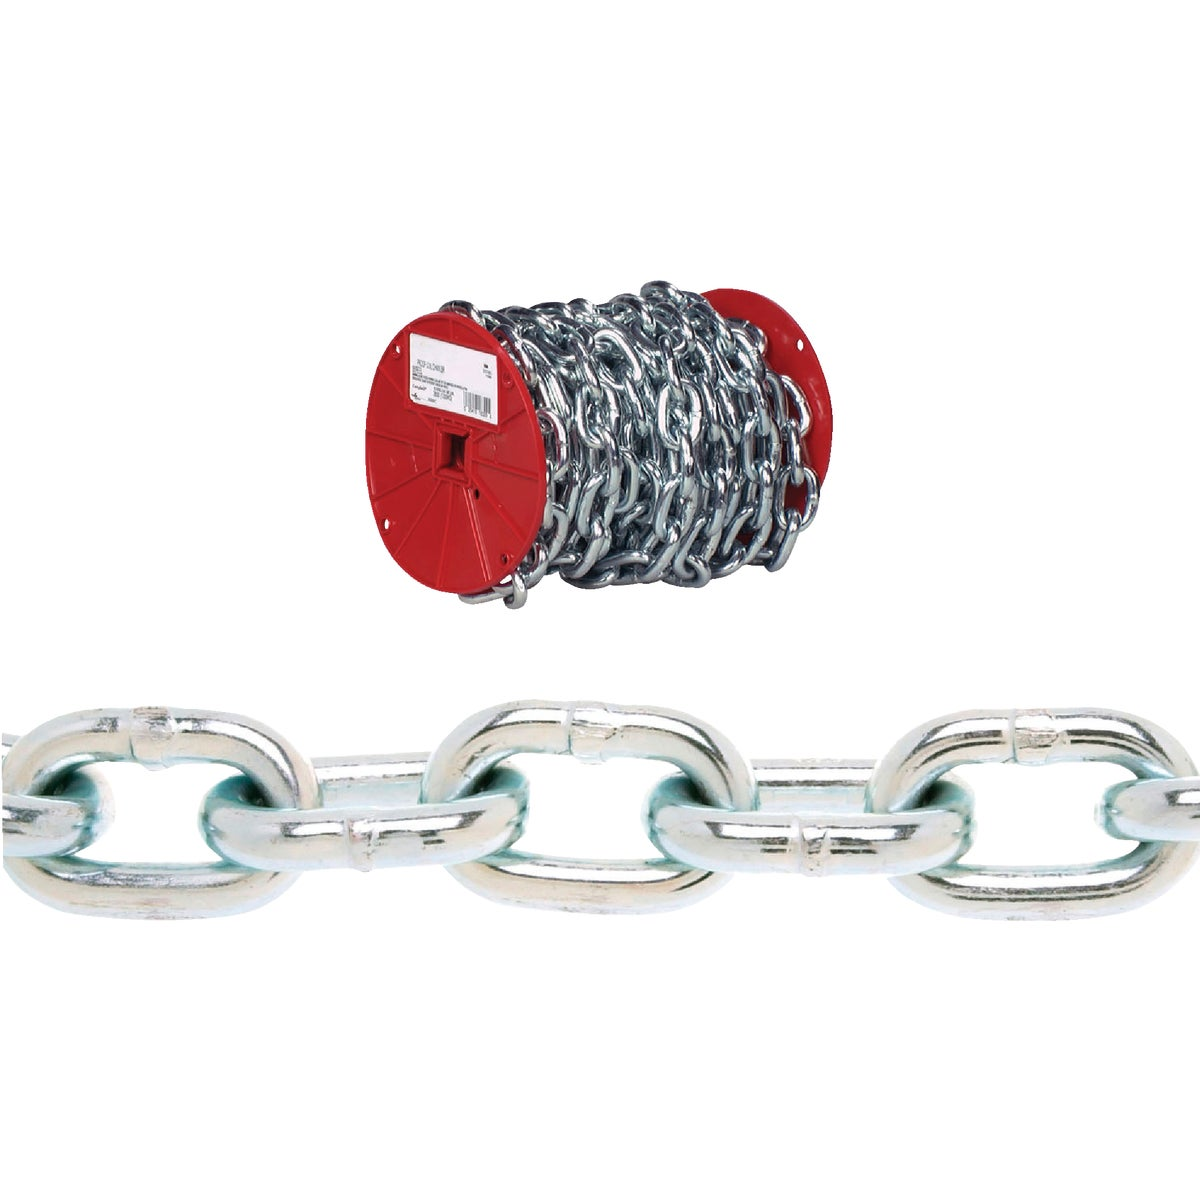 "35' 3/8"" G30 CHAIN - 0722327 by Cooper Campbell Apex"